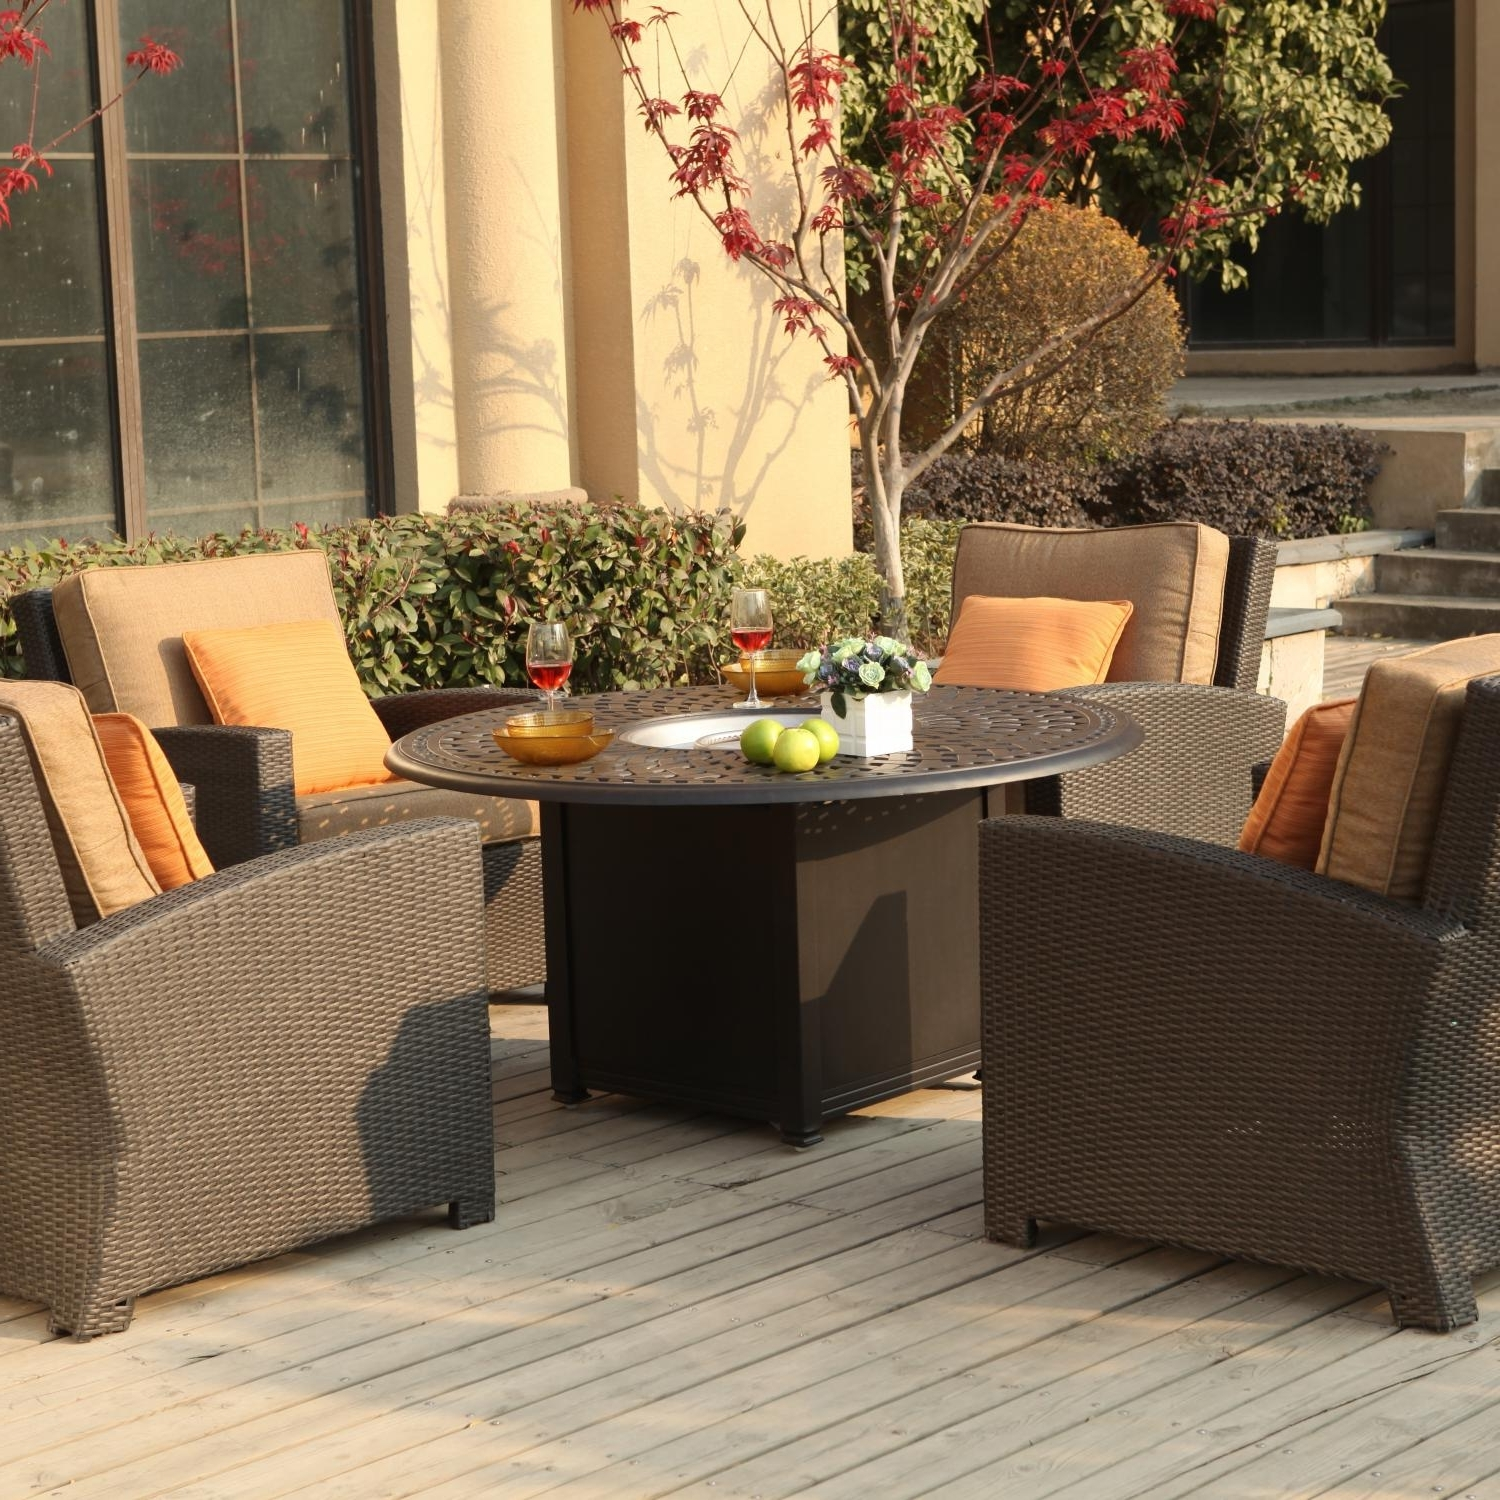 Patio Conversation Sets With Propane Fire Pit With Regard To Current Darlee Vienna 5 Piece Resin Wicker Patio Fire Pit Set (View 8 of 15)